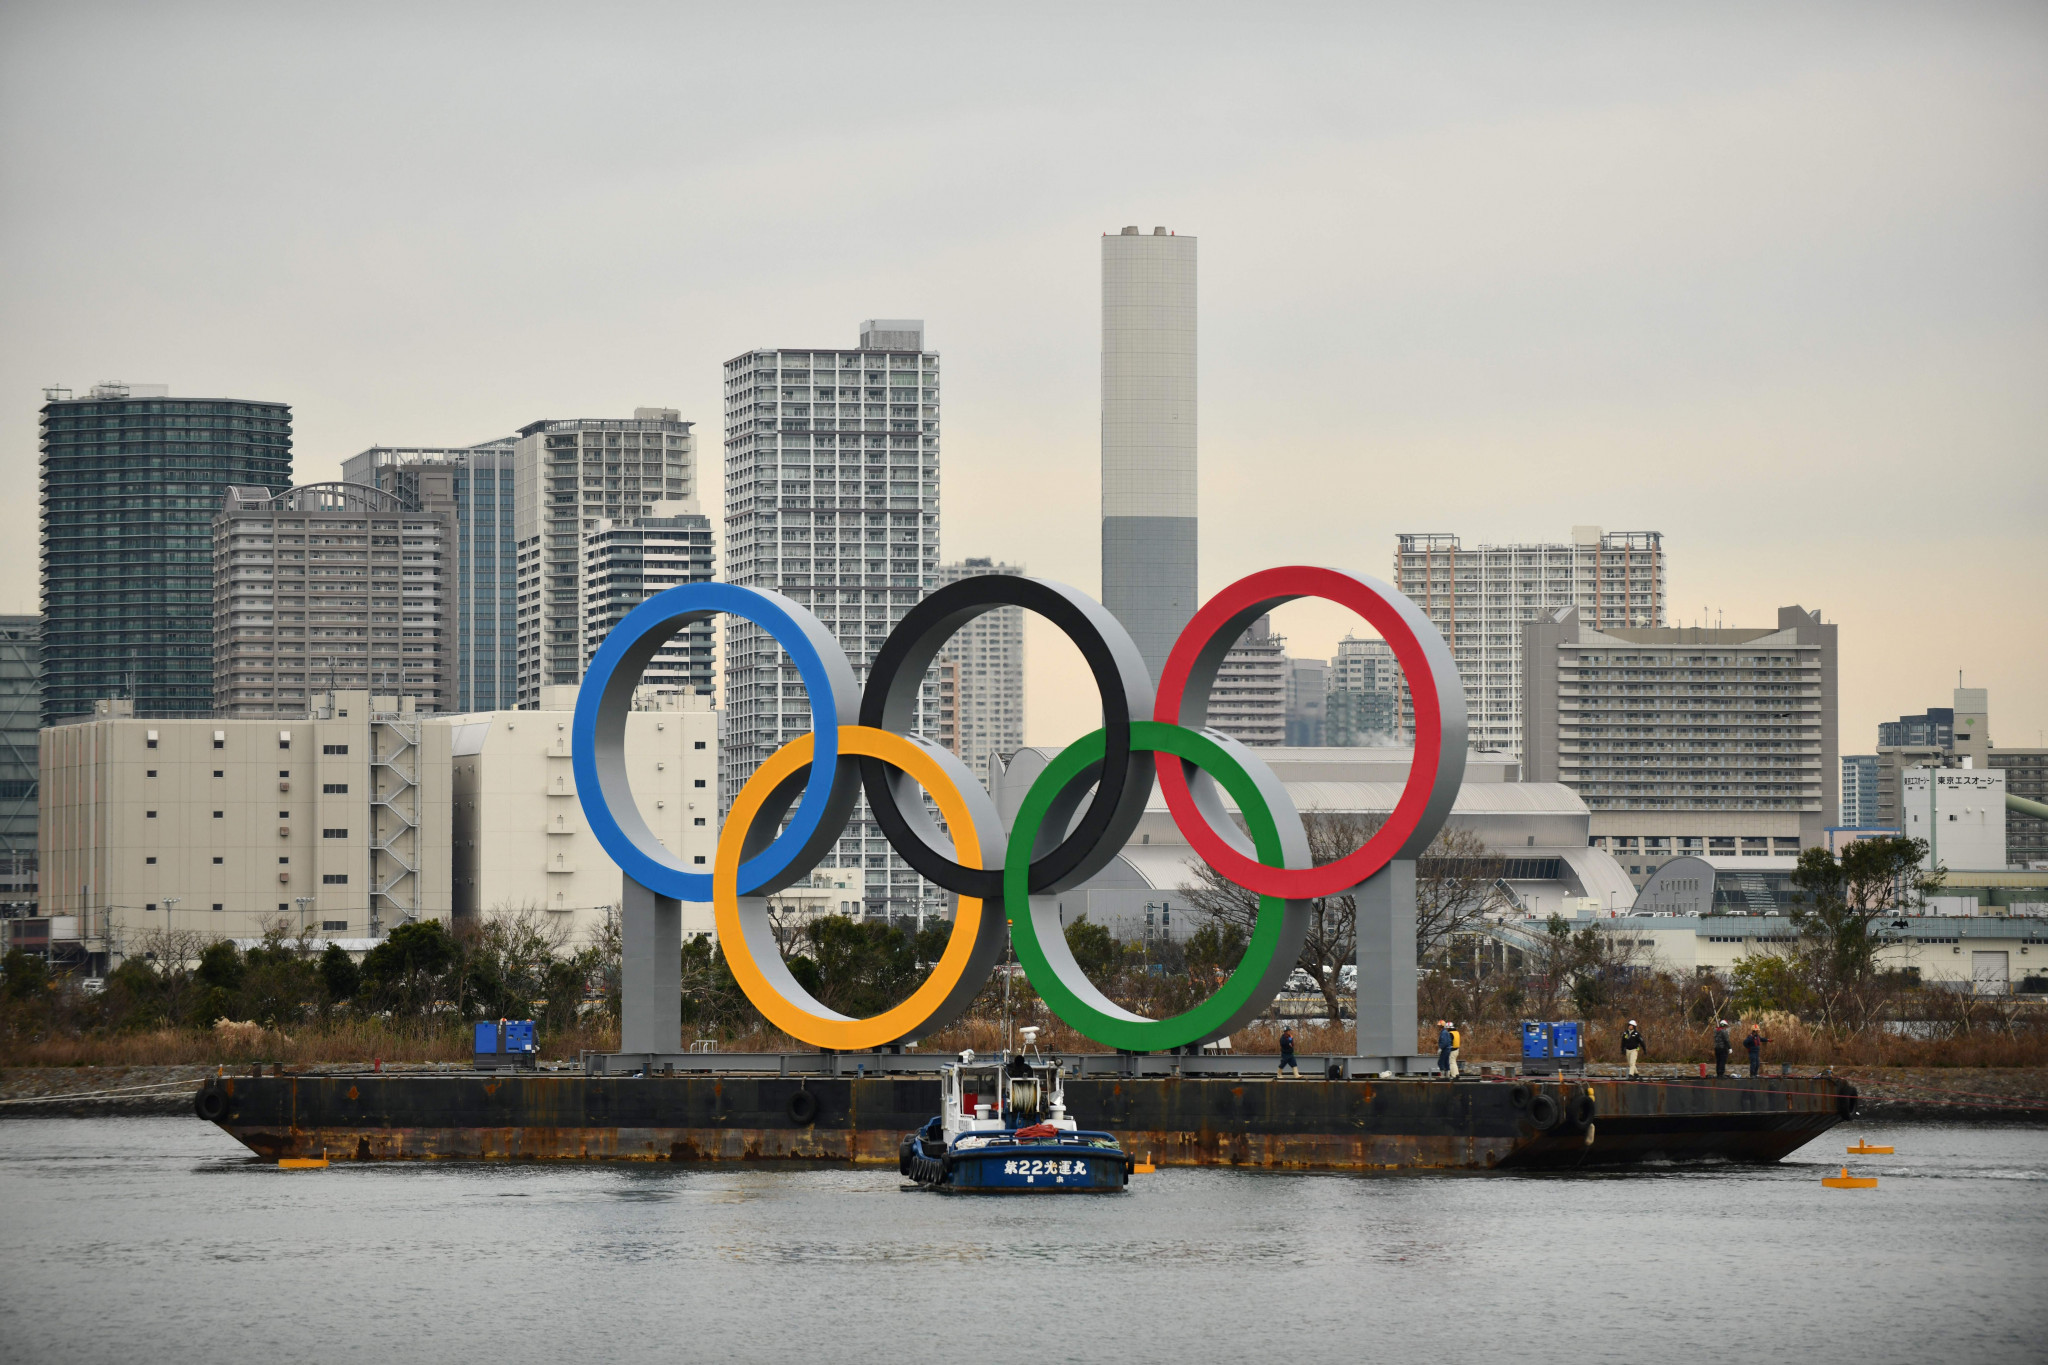 Olympic rings installed at Odaiba Marine Park, as countdown to Tokyo 2020 continues